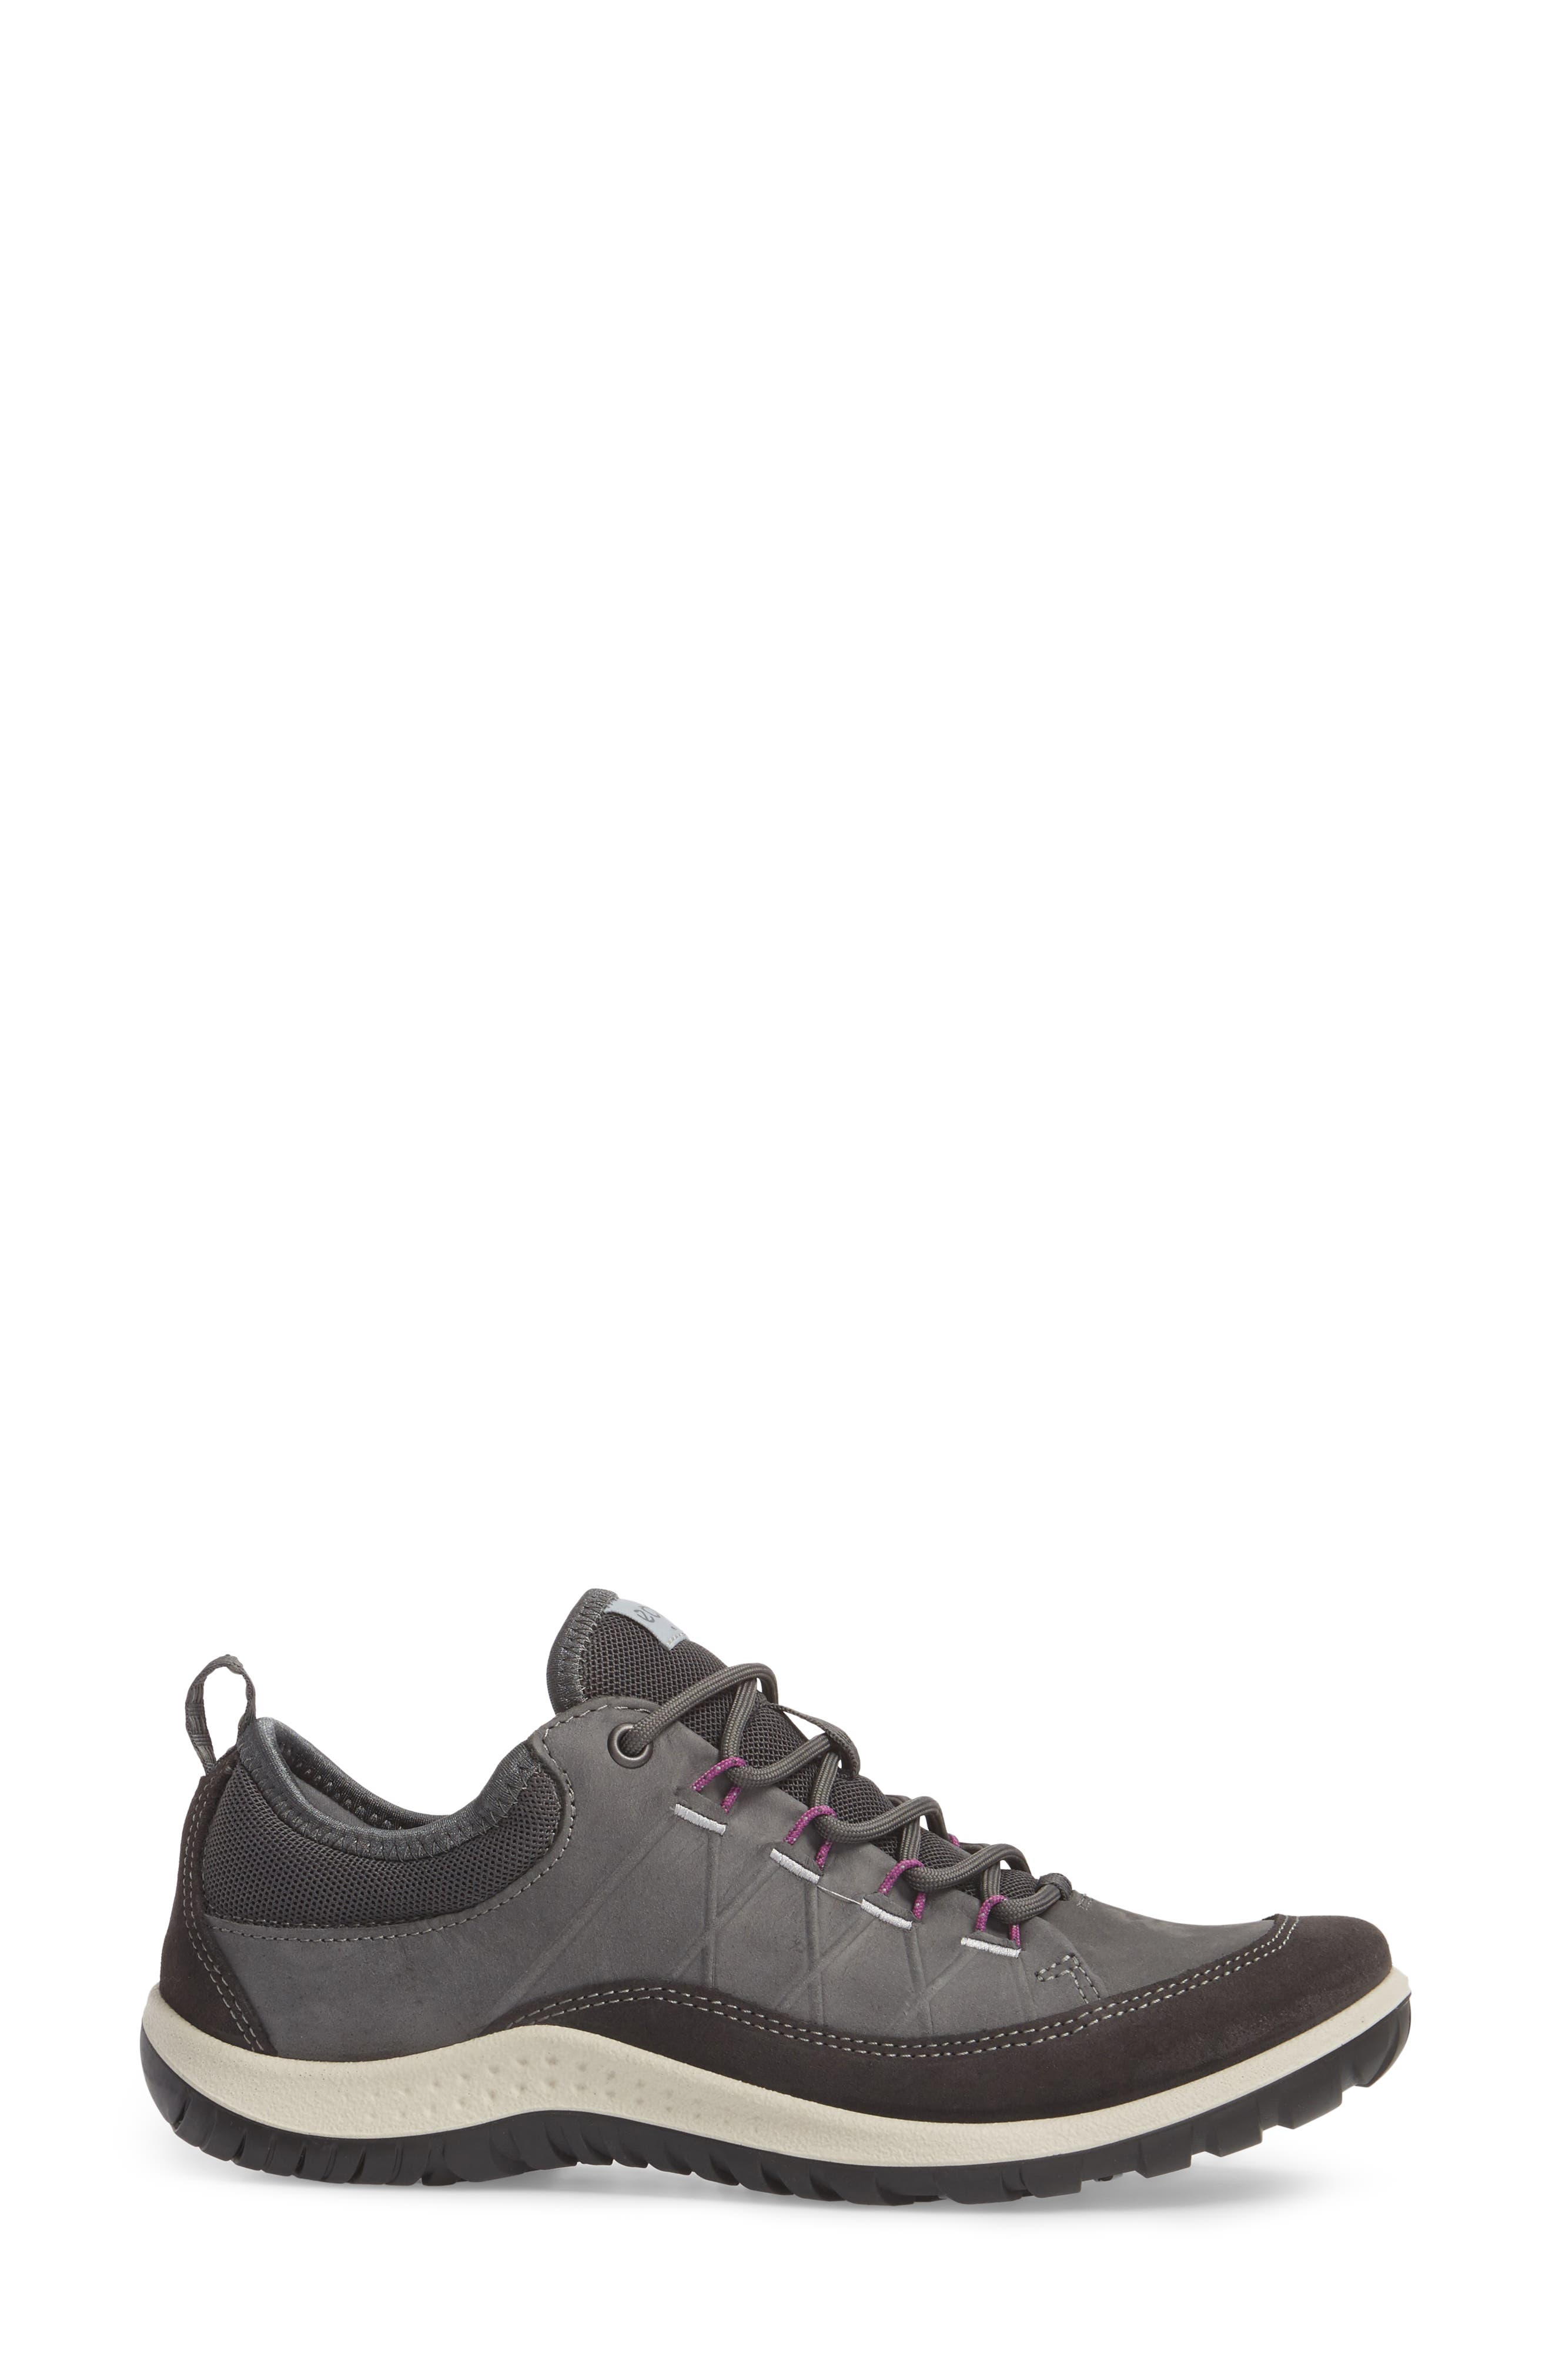 'Aspina' Sneaker,                             Alternate thumbnail 3, color,                             Moonless Leather